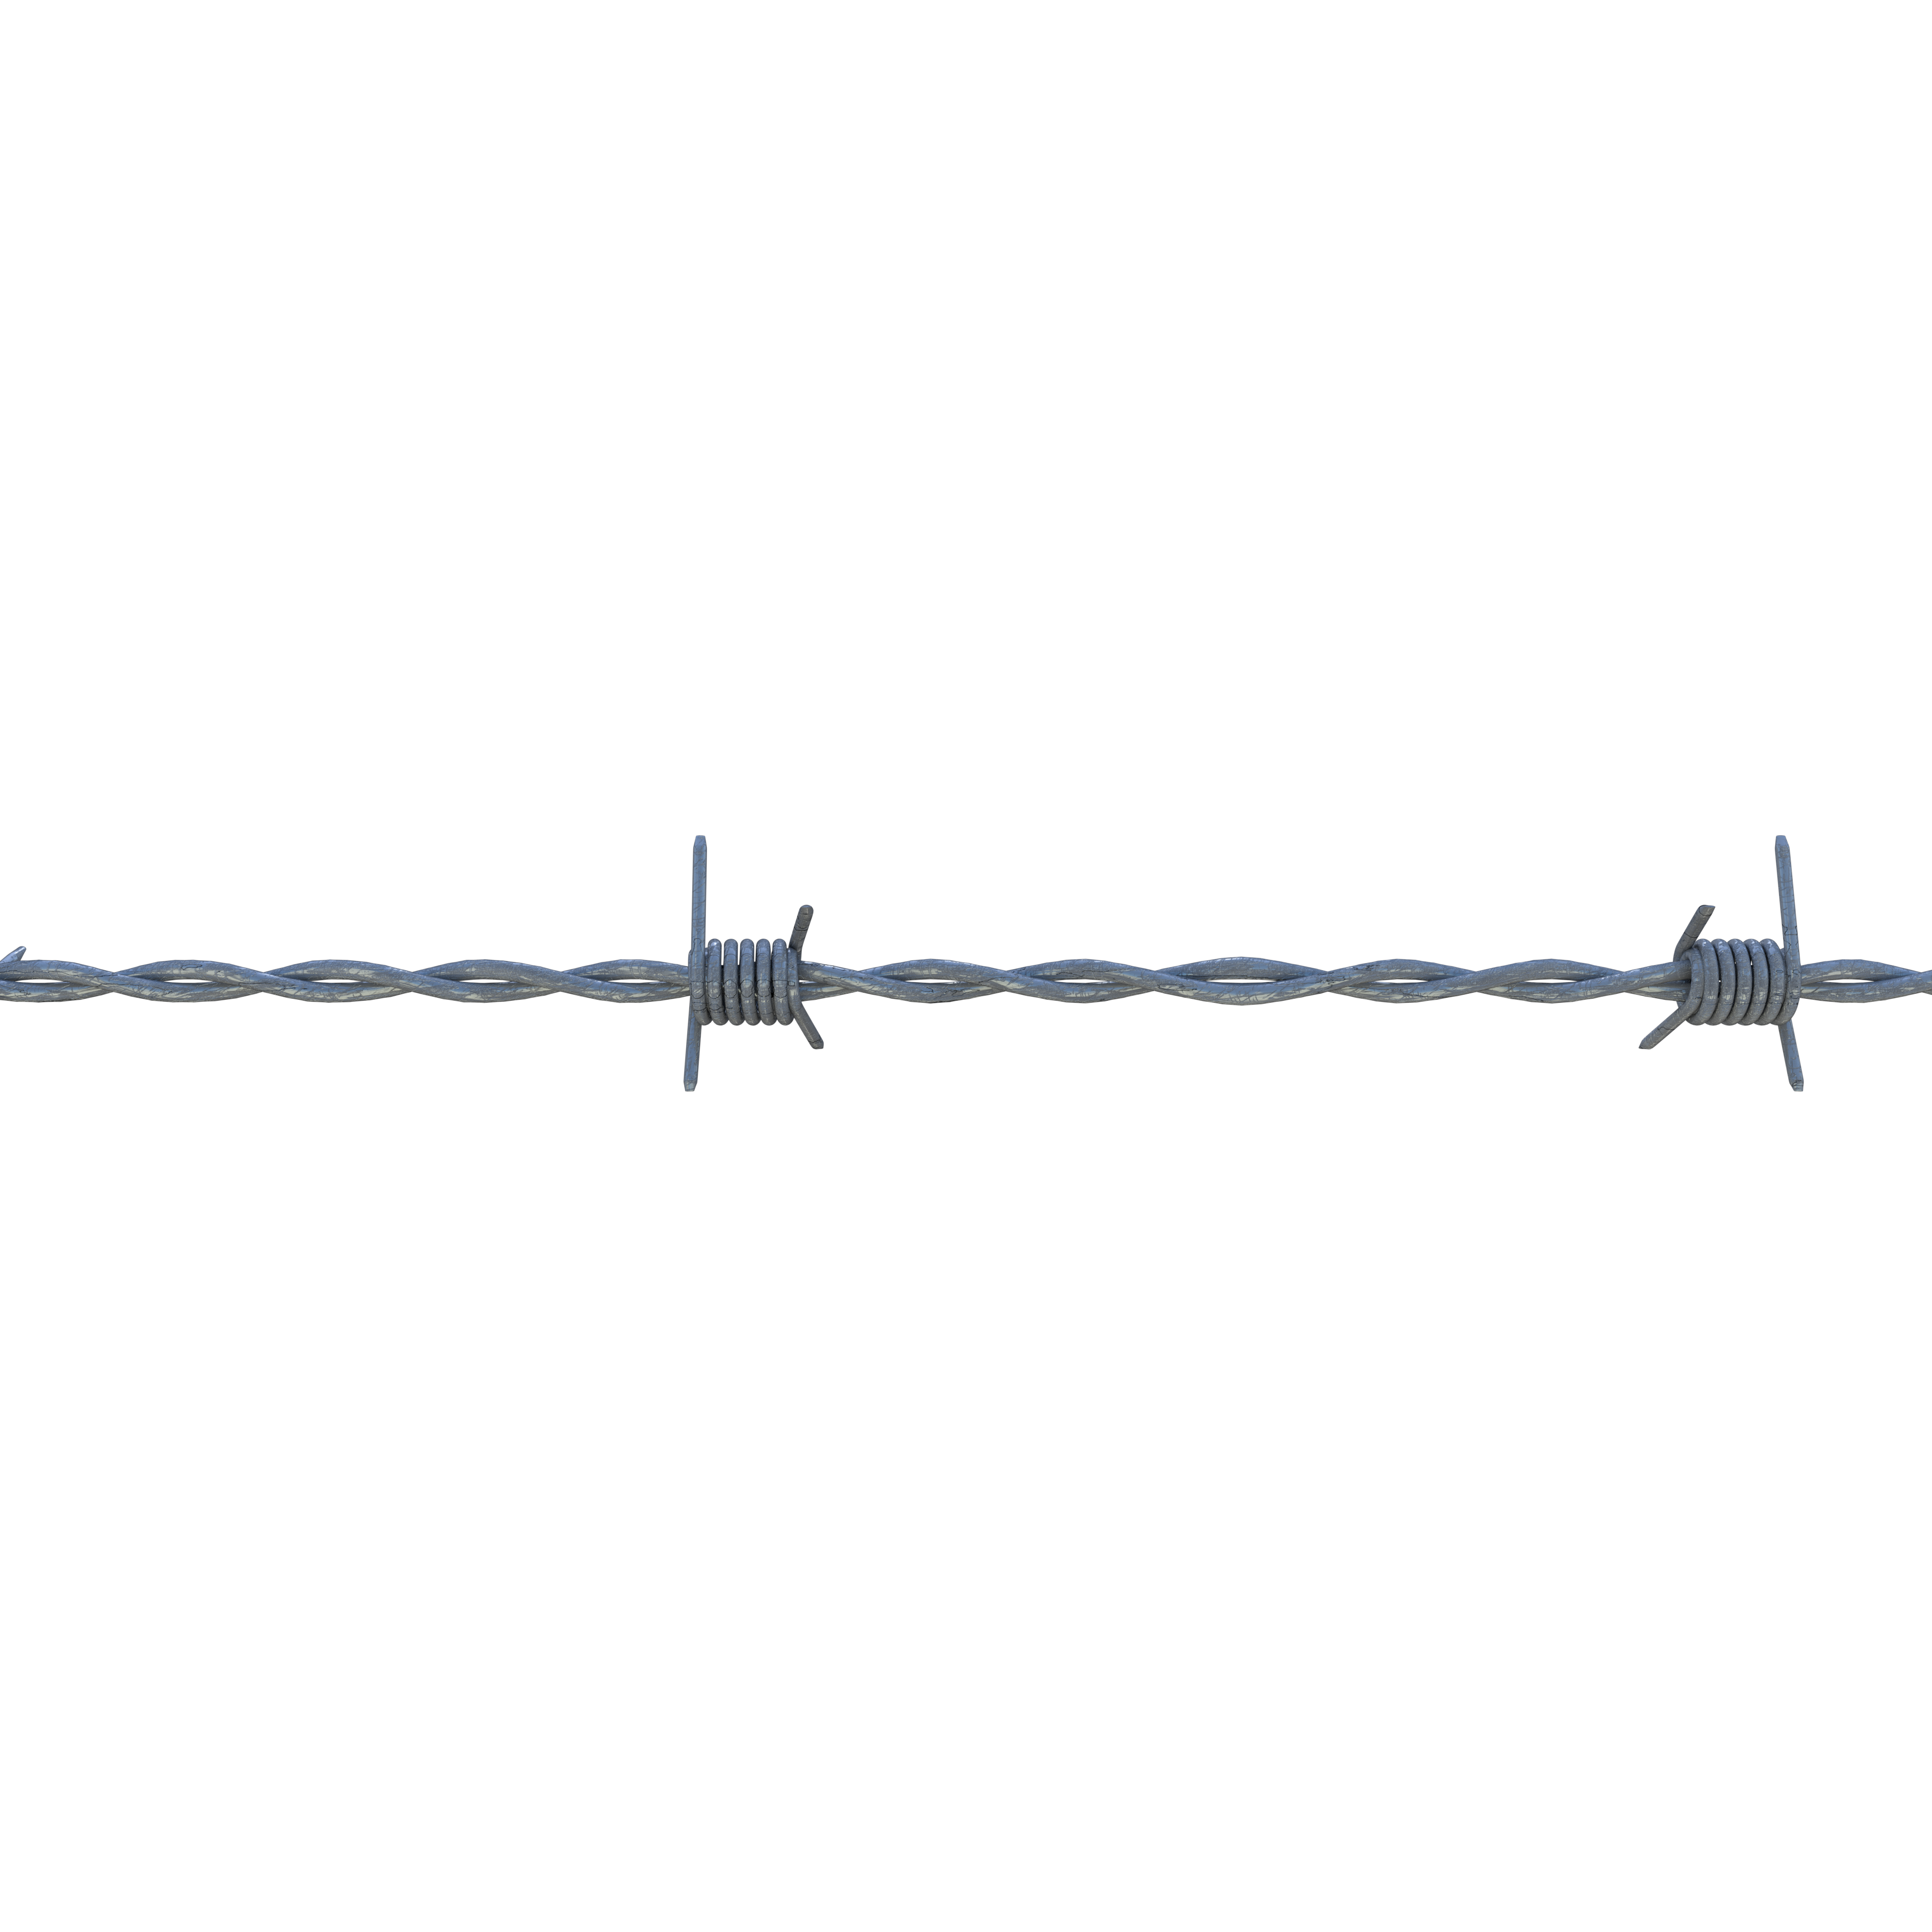 Barb Wire Pattern Drawing Barbs Pattern Design